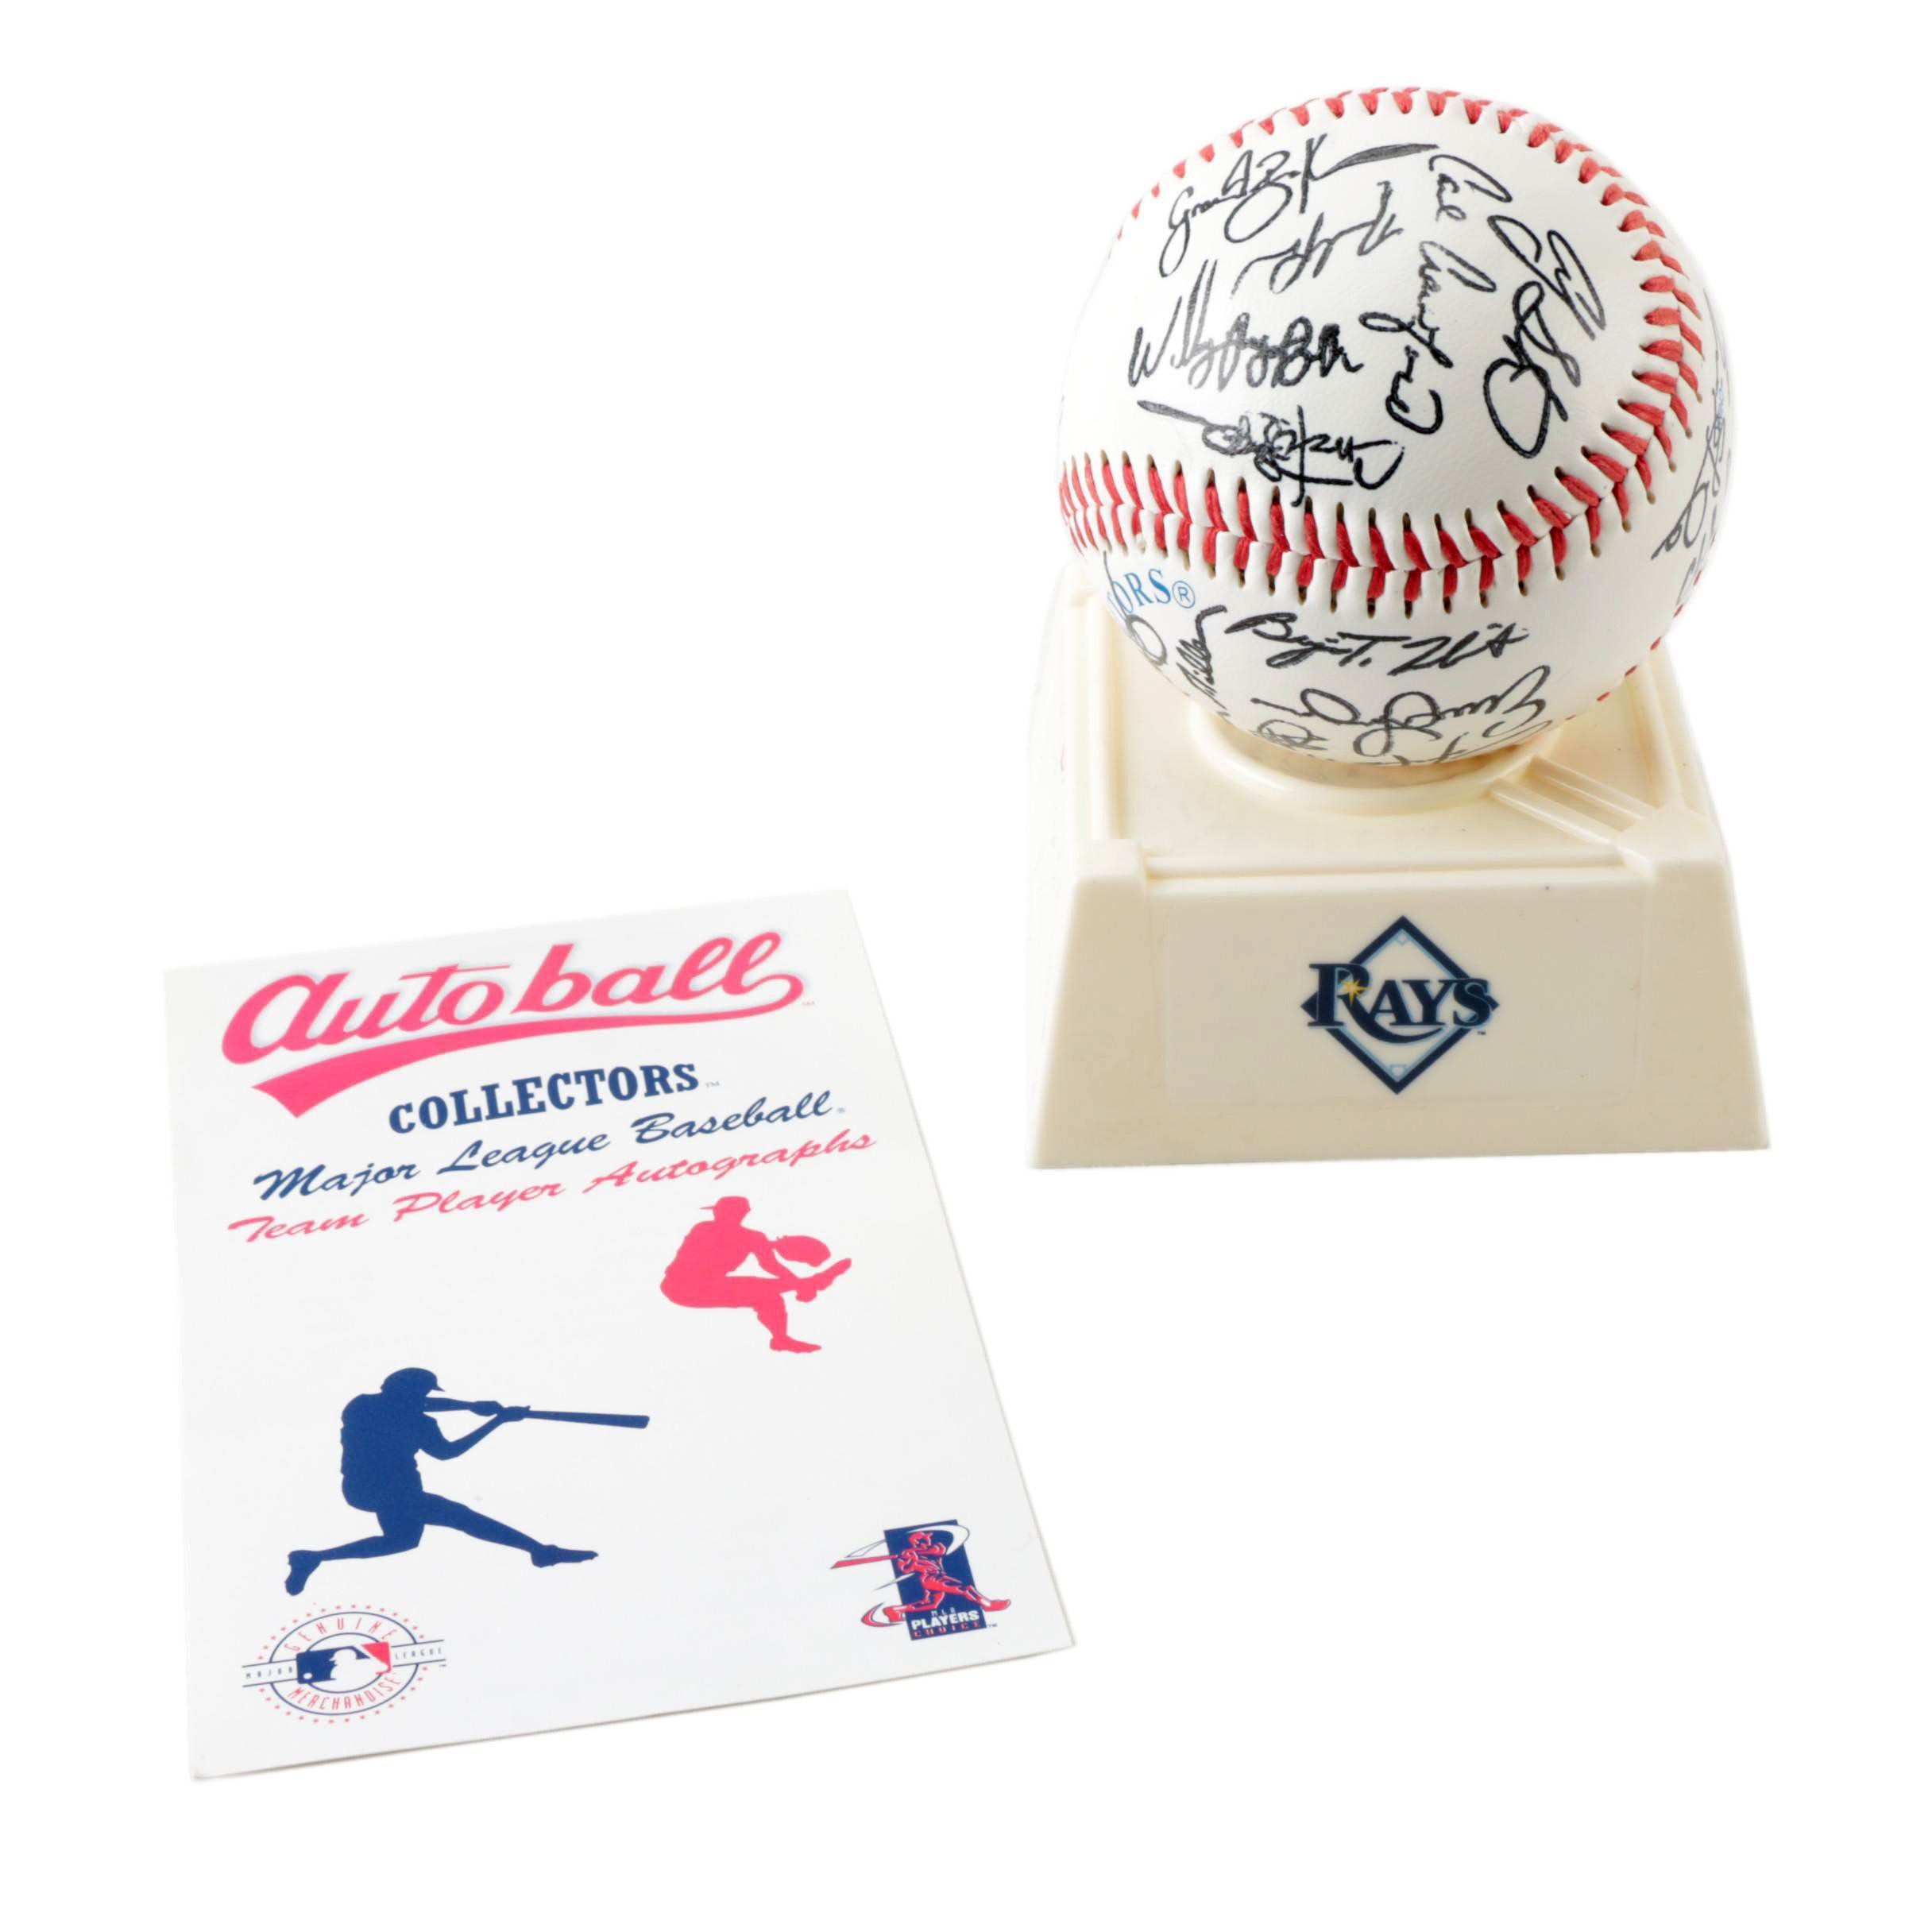 Tampa Bay Rays 2008 World Series Collectors Team Stamped Baseball